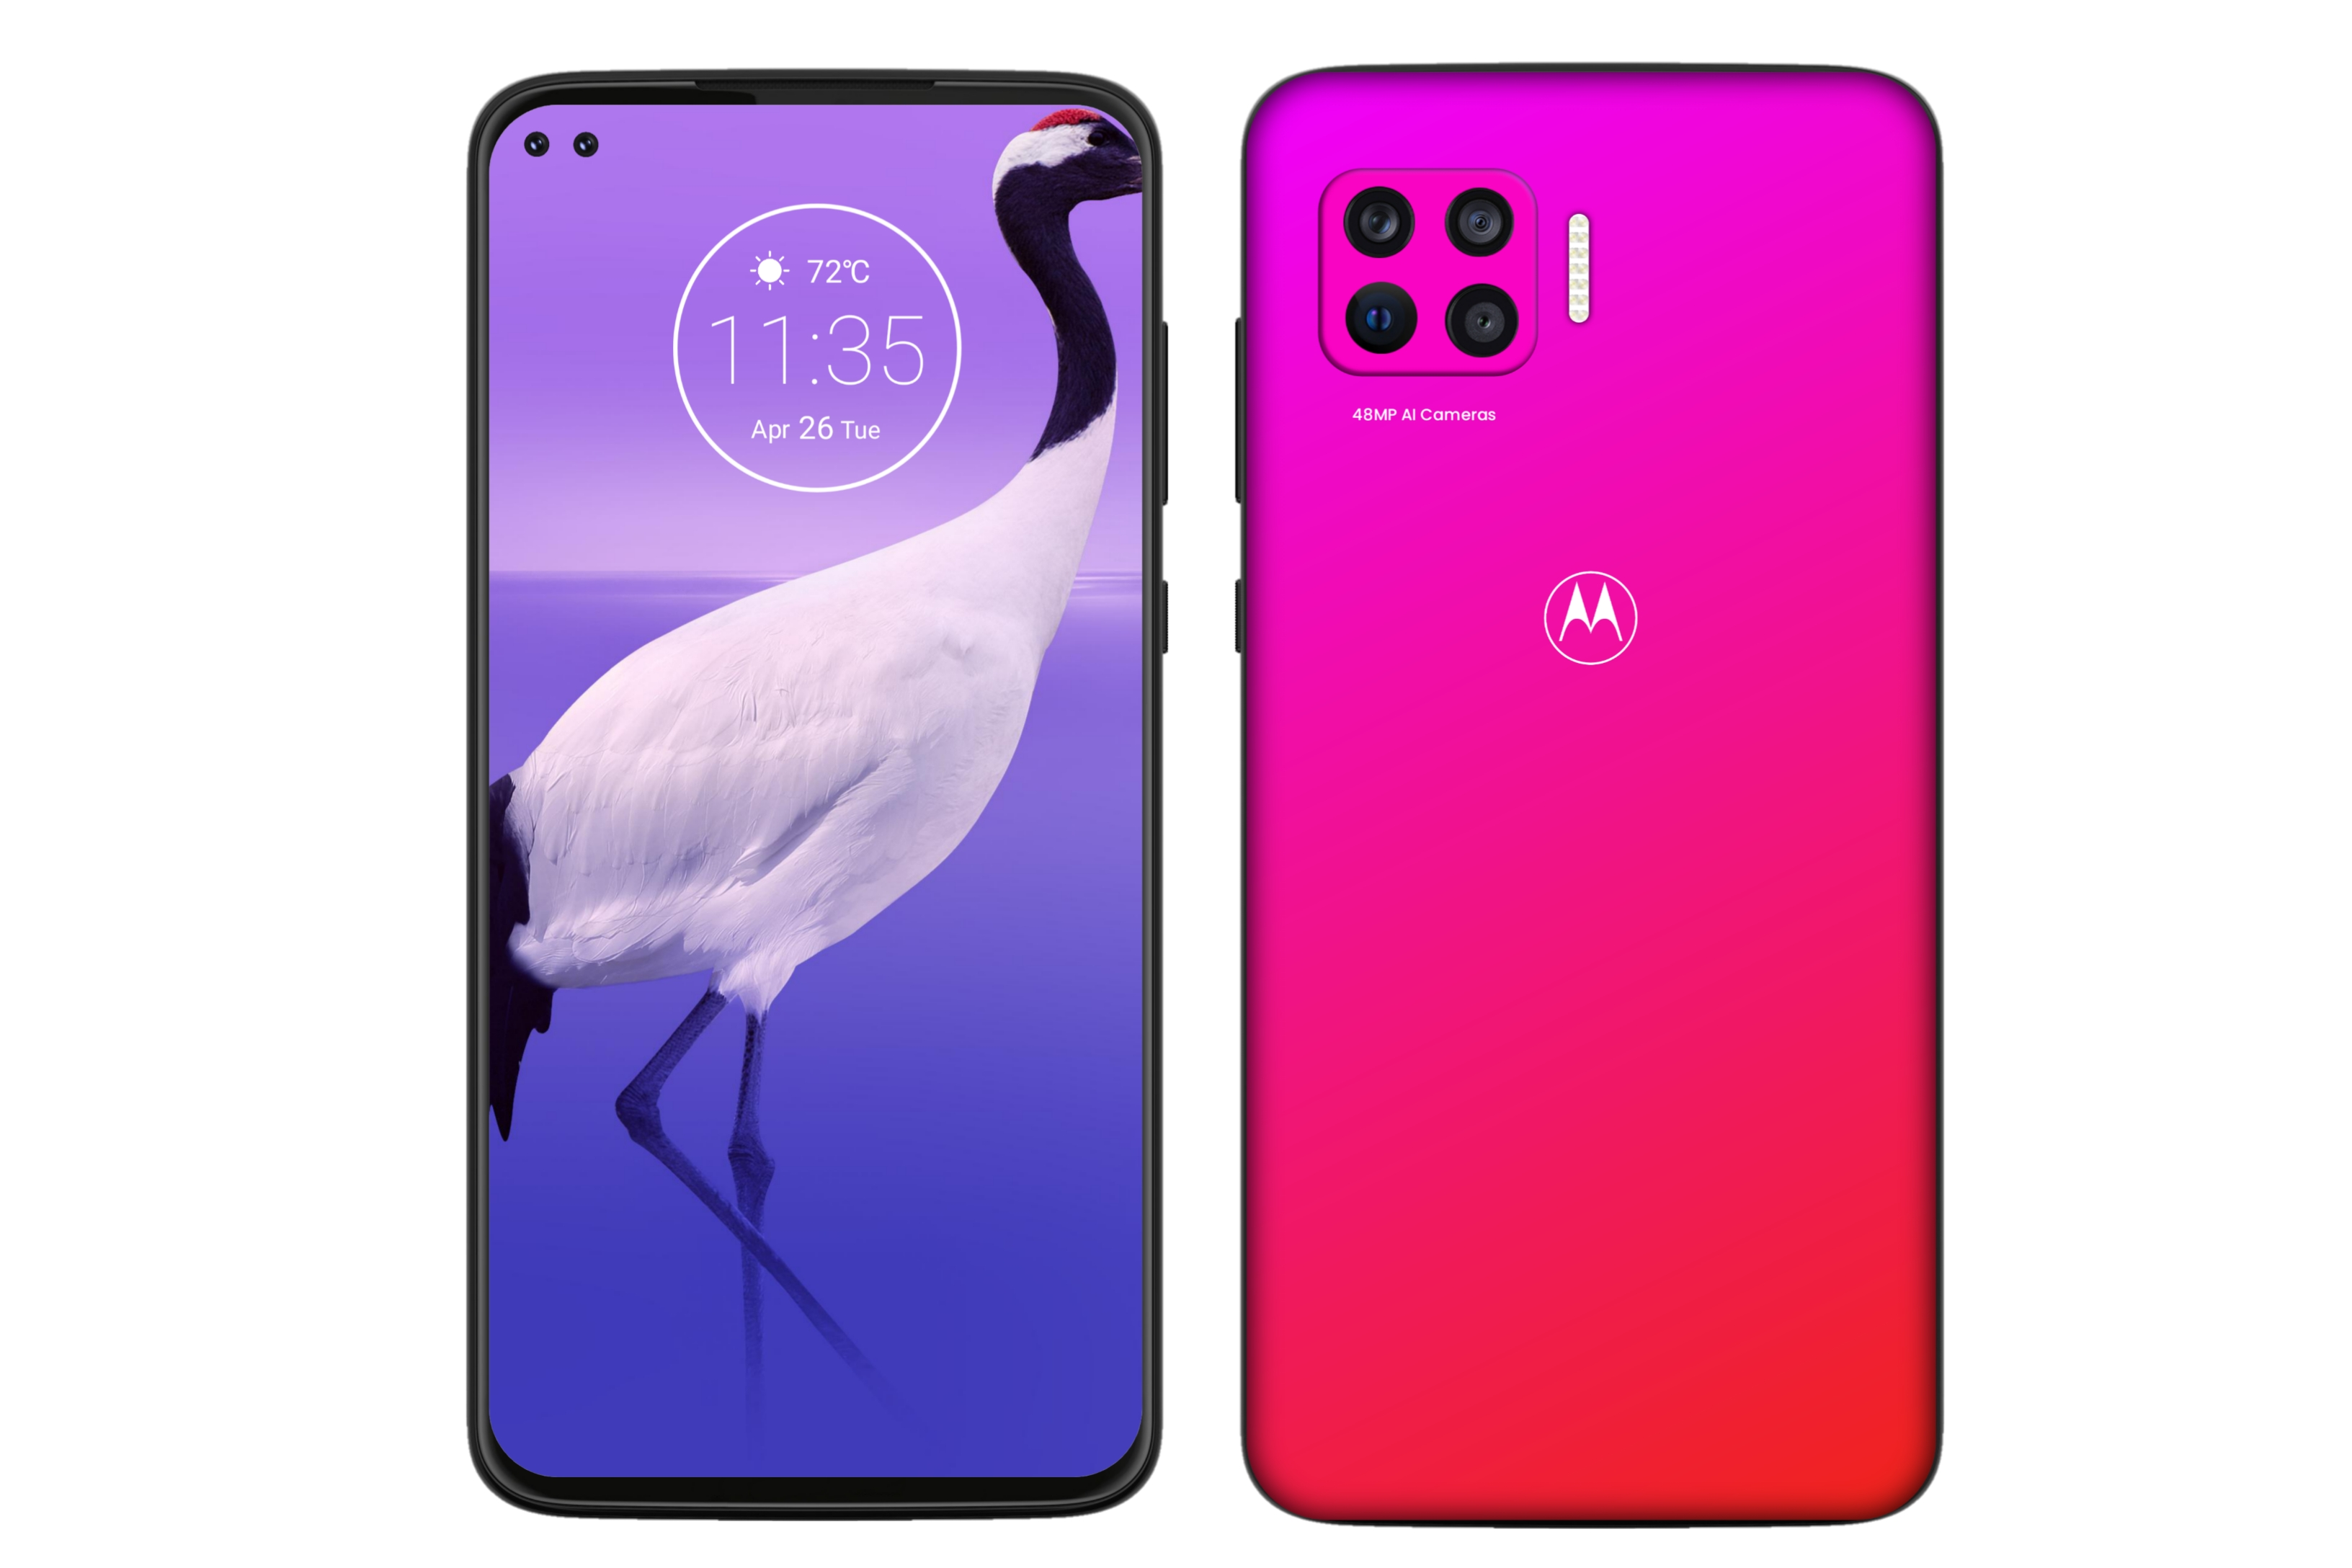 Motorola Moto G 5G - A new concept design Smartphone with 3D Design and Renders